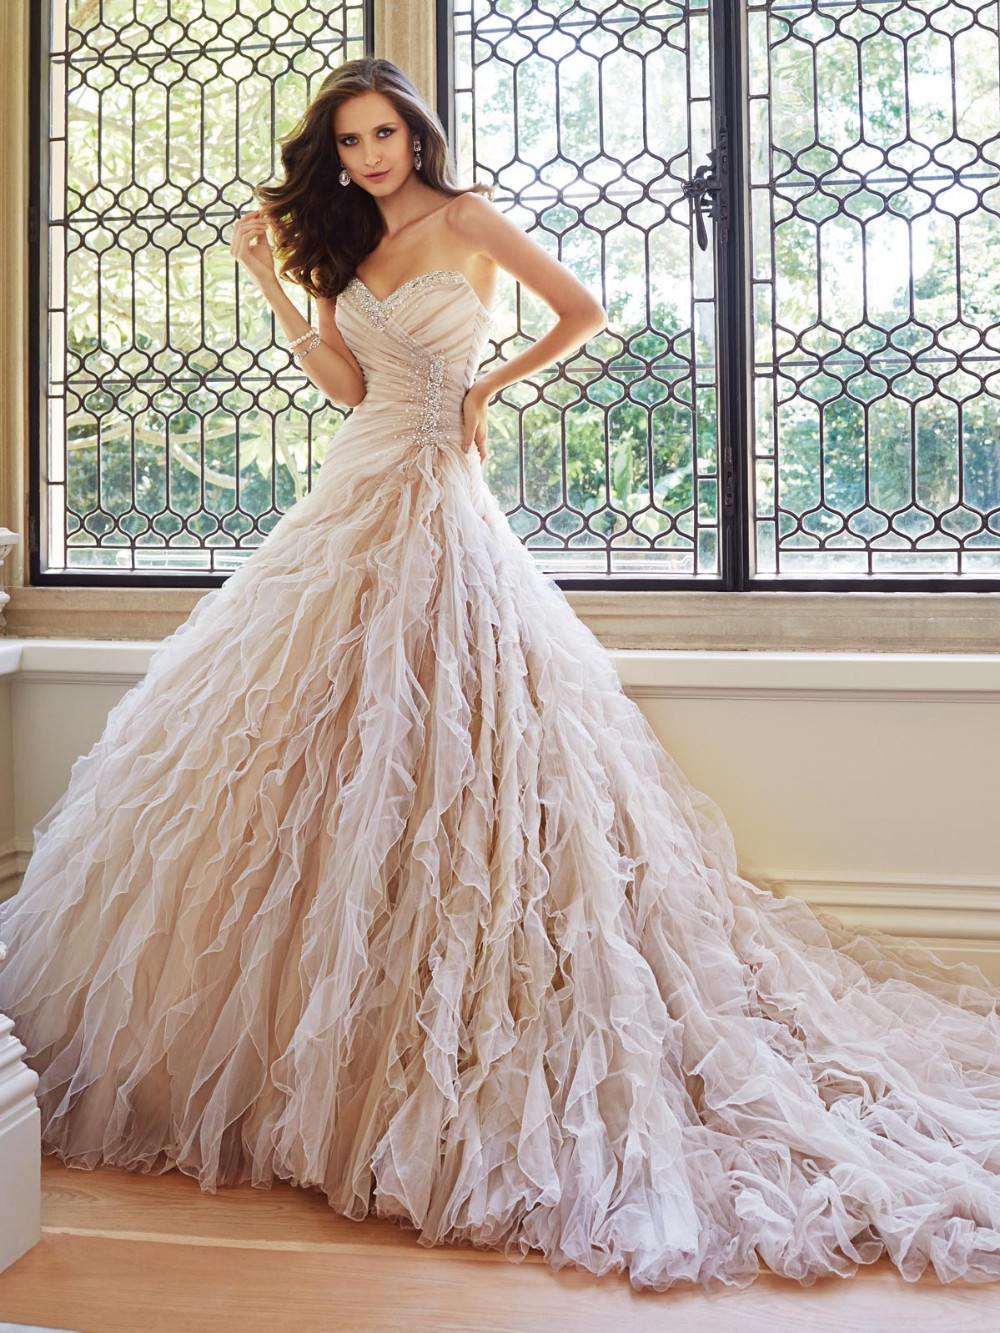 Elegant Crystal Strapless Sweetheart And Frothy Layers Of Misty Tulle Chapel Length Train Ball Gown Wedding Dresses 2016